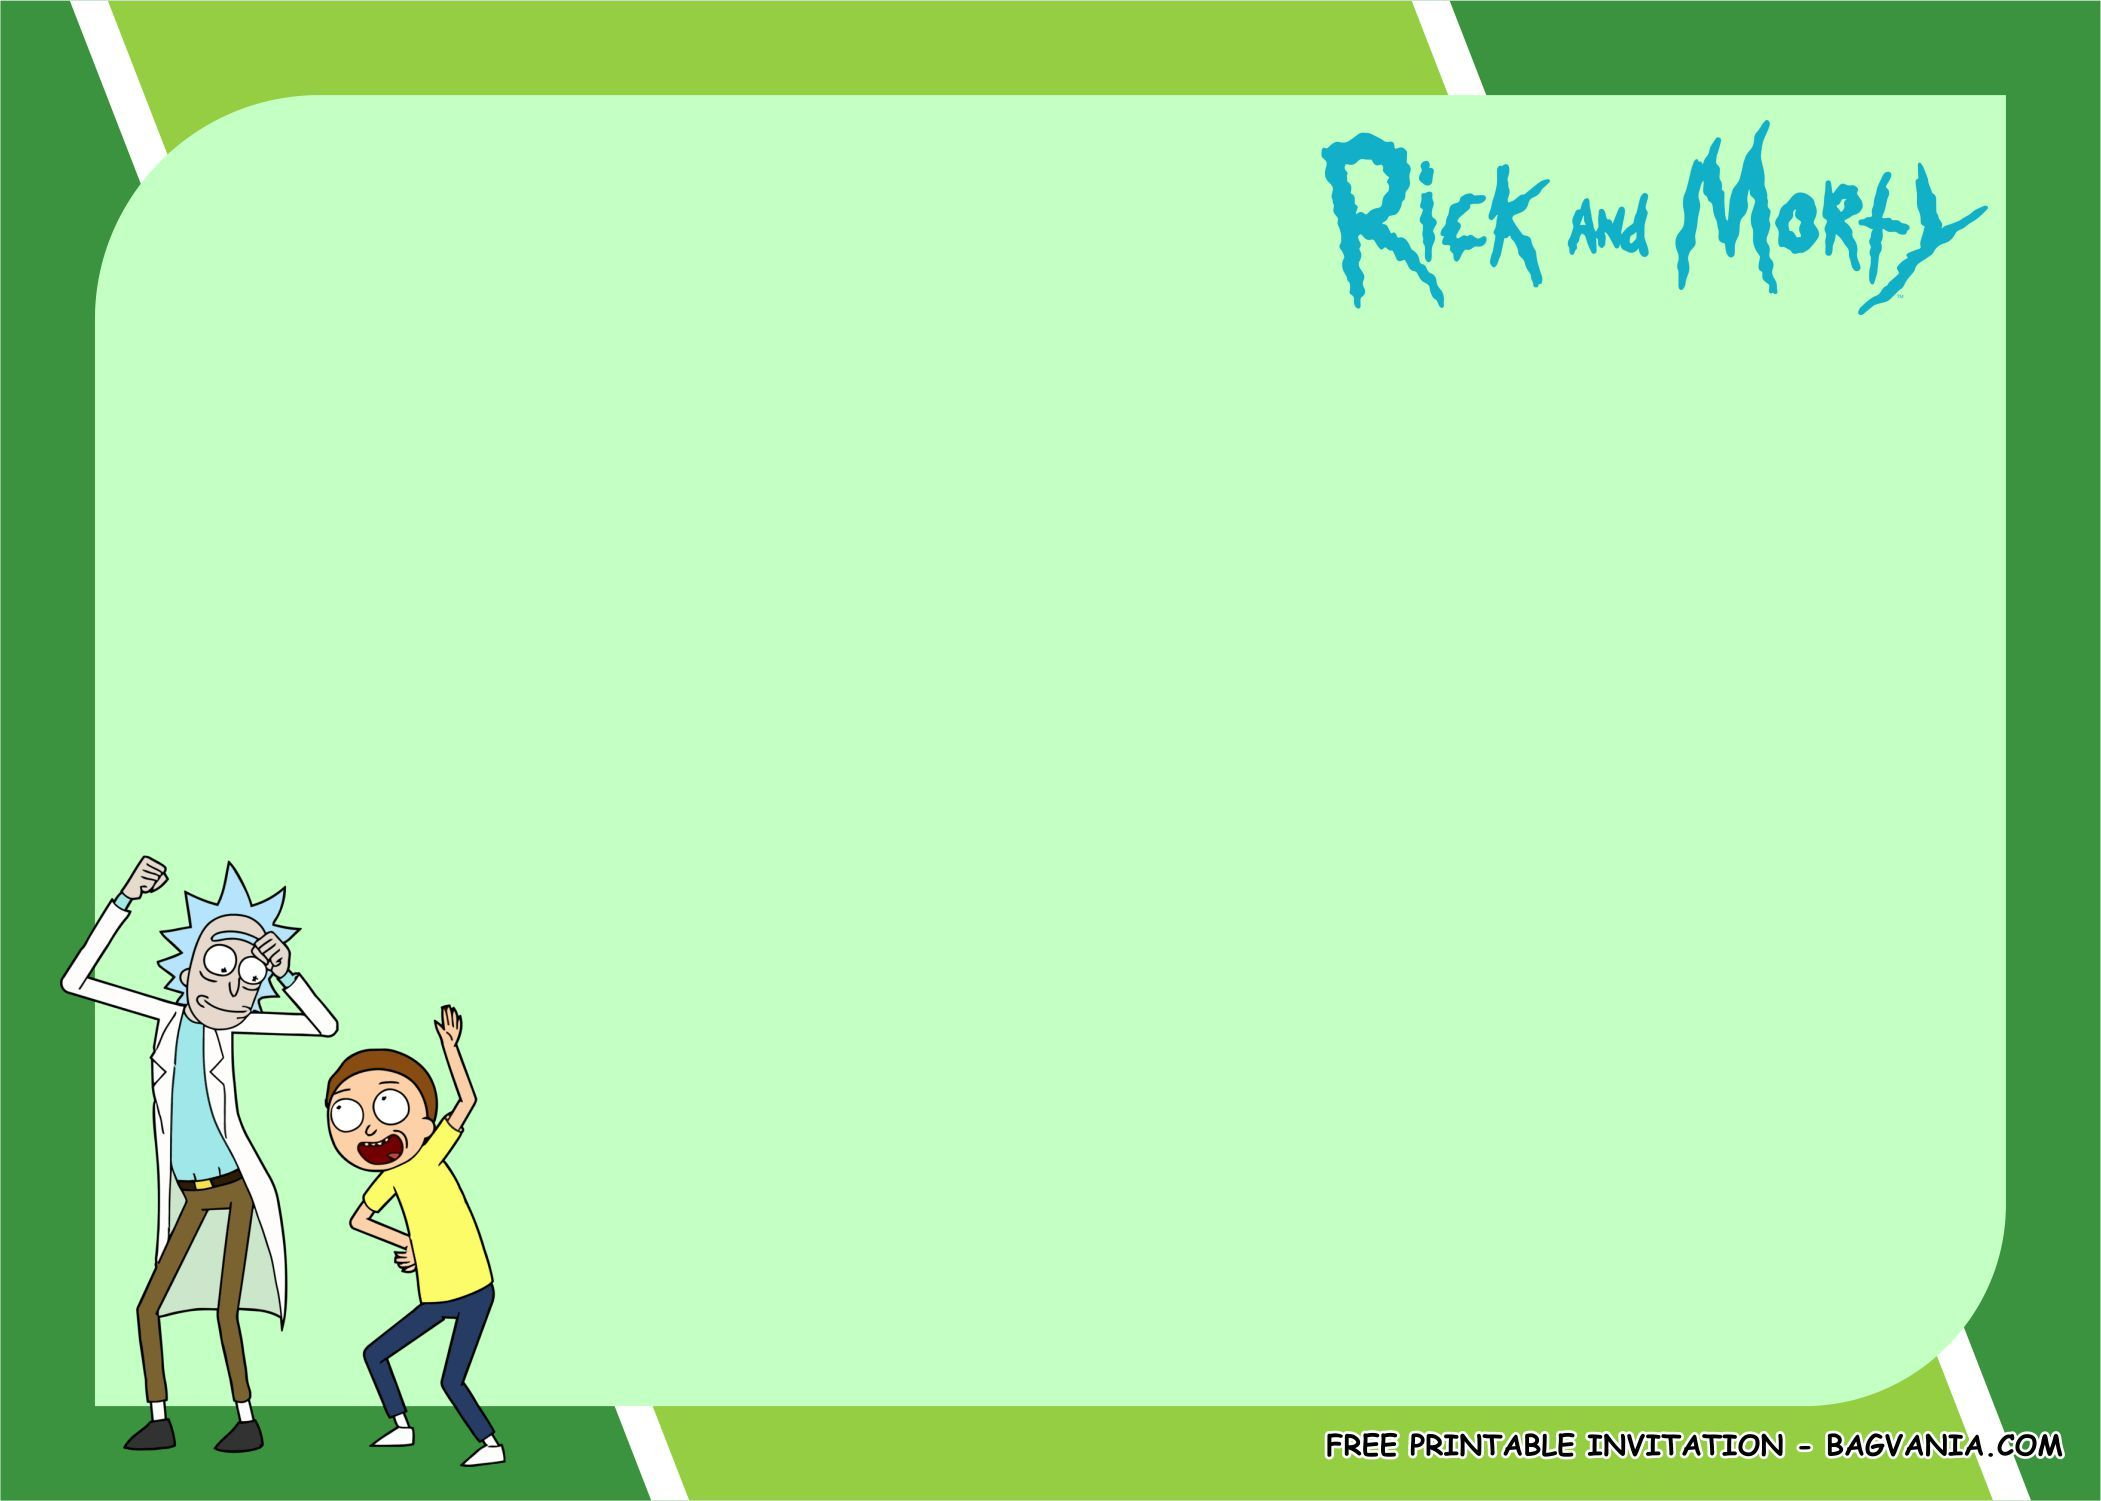 Free Printable Rick And Morty Birthday Party Kits Template Birthday Party Kits Free Printable Birthday Invitations Free Birthday Invitation Templates